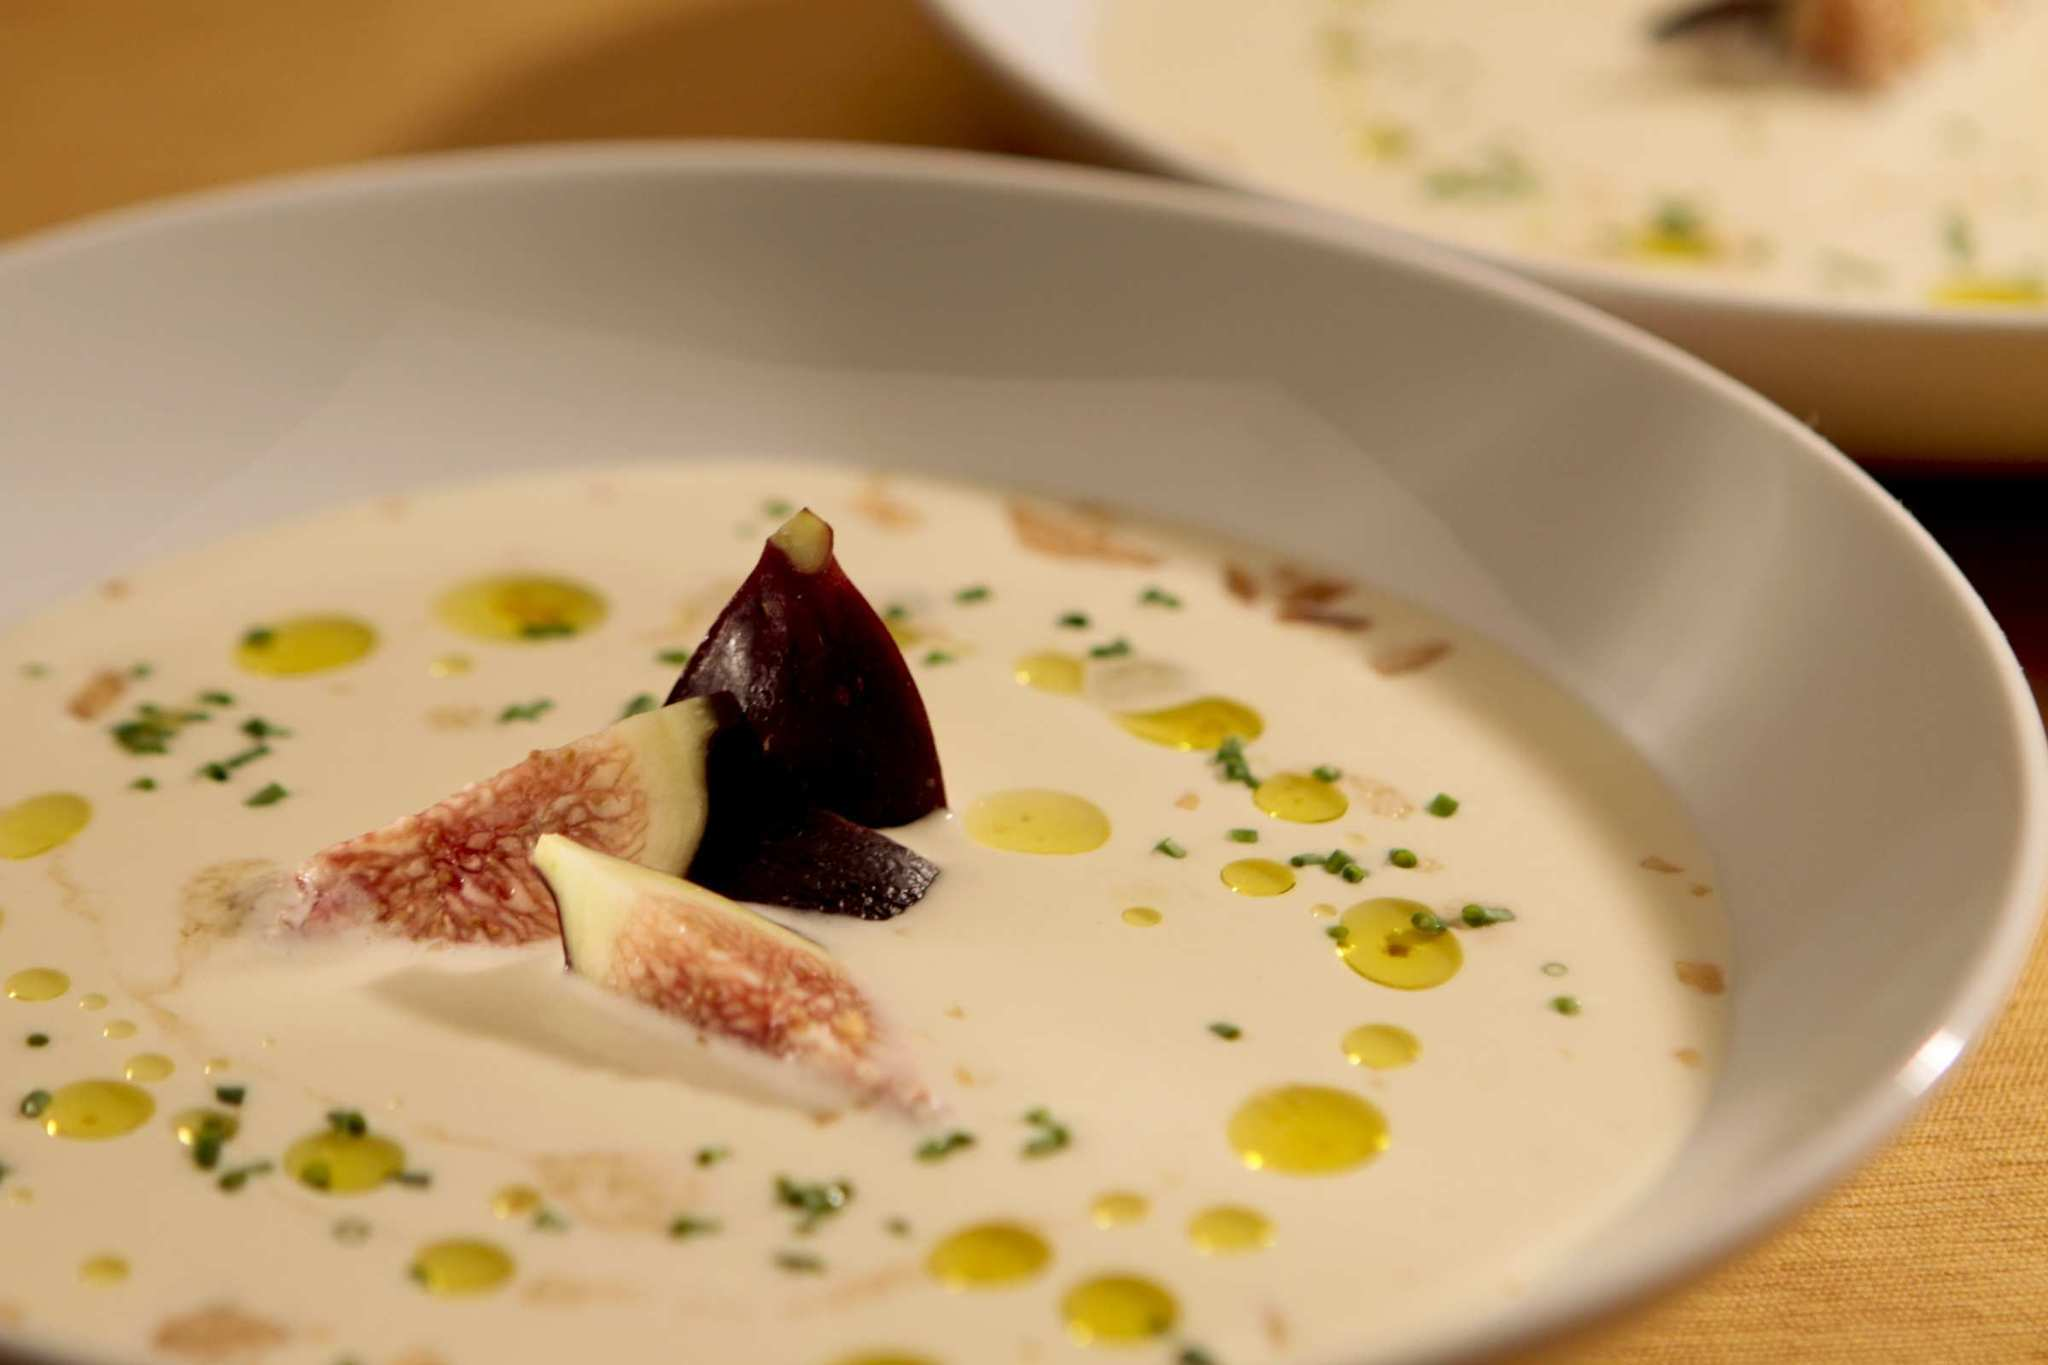 Cold almond and garlic soup.